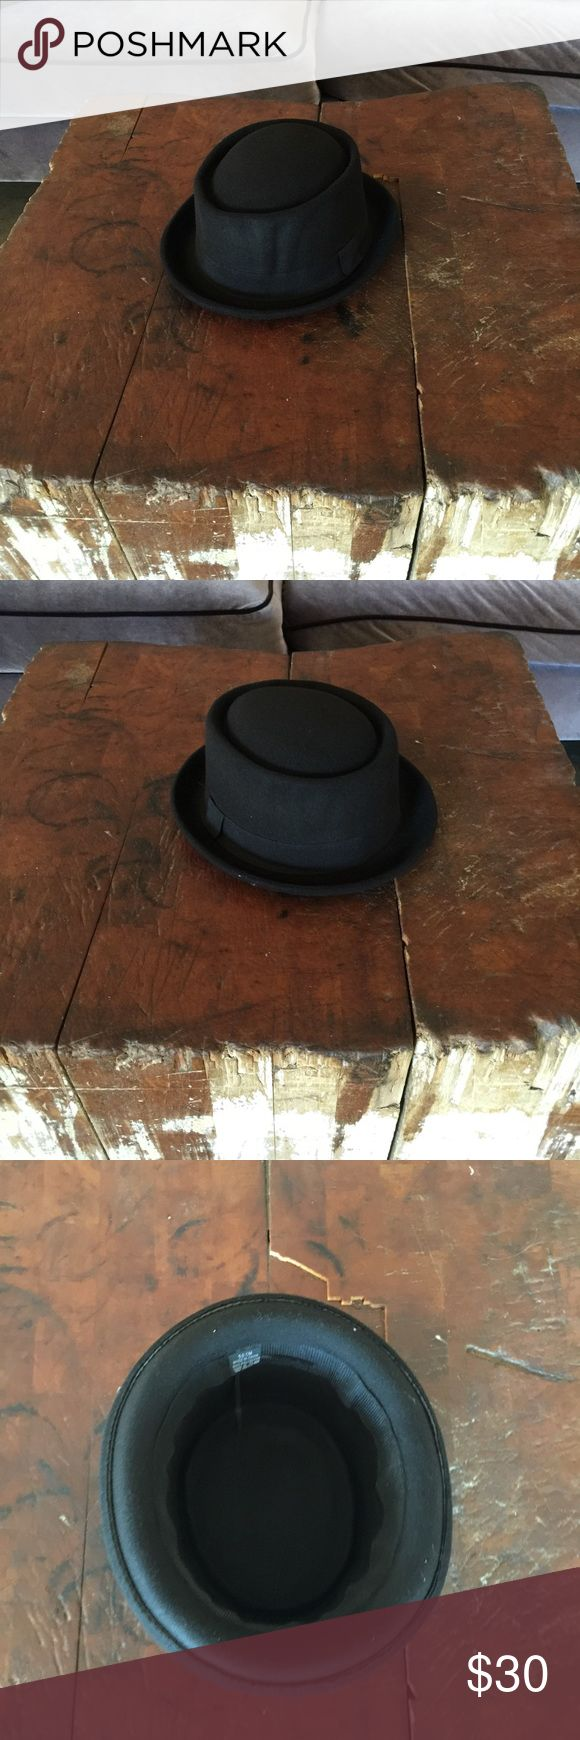 New Walter White Porpie Fedora Hat Black L/XL 100% polyester. Very high quality fedora hat. Firm on price. Please no offers. Thank you. Accessories Hats